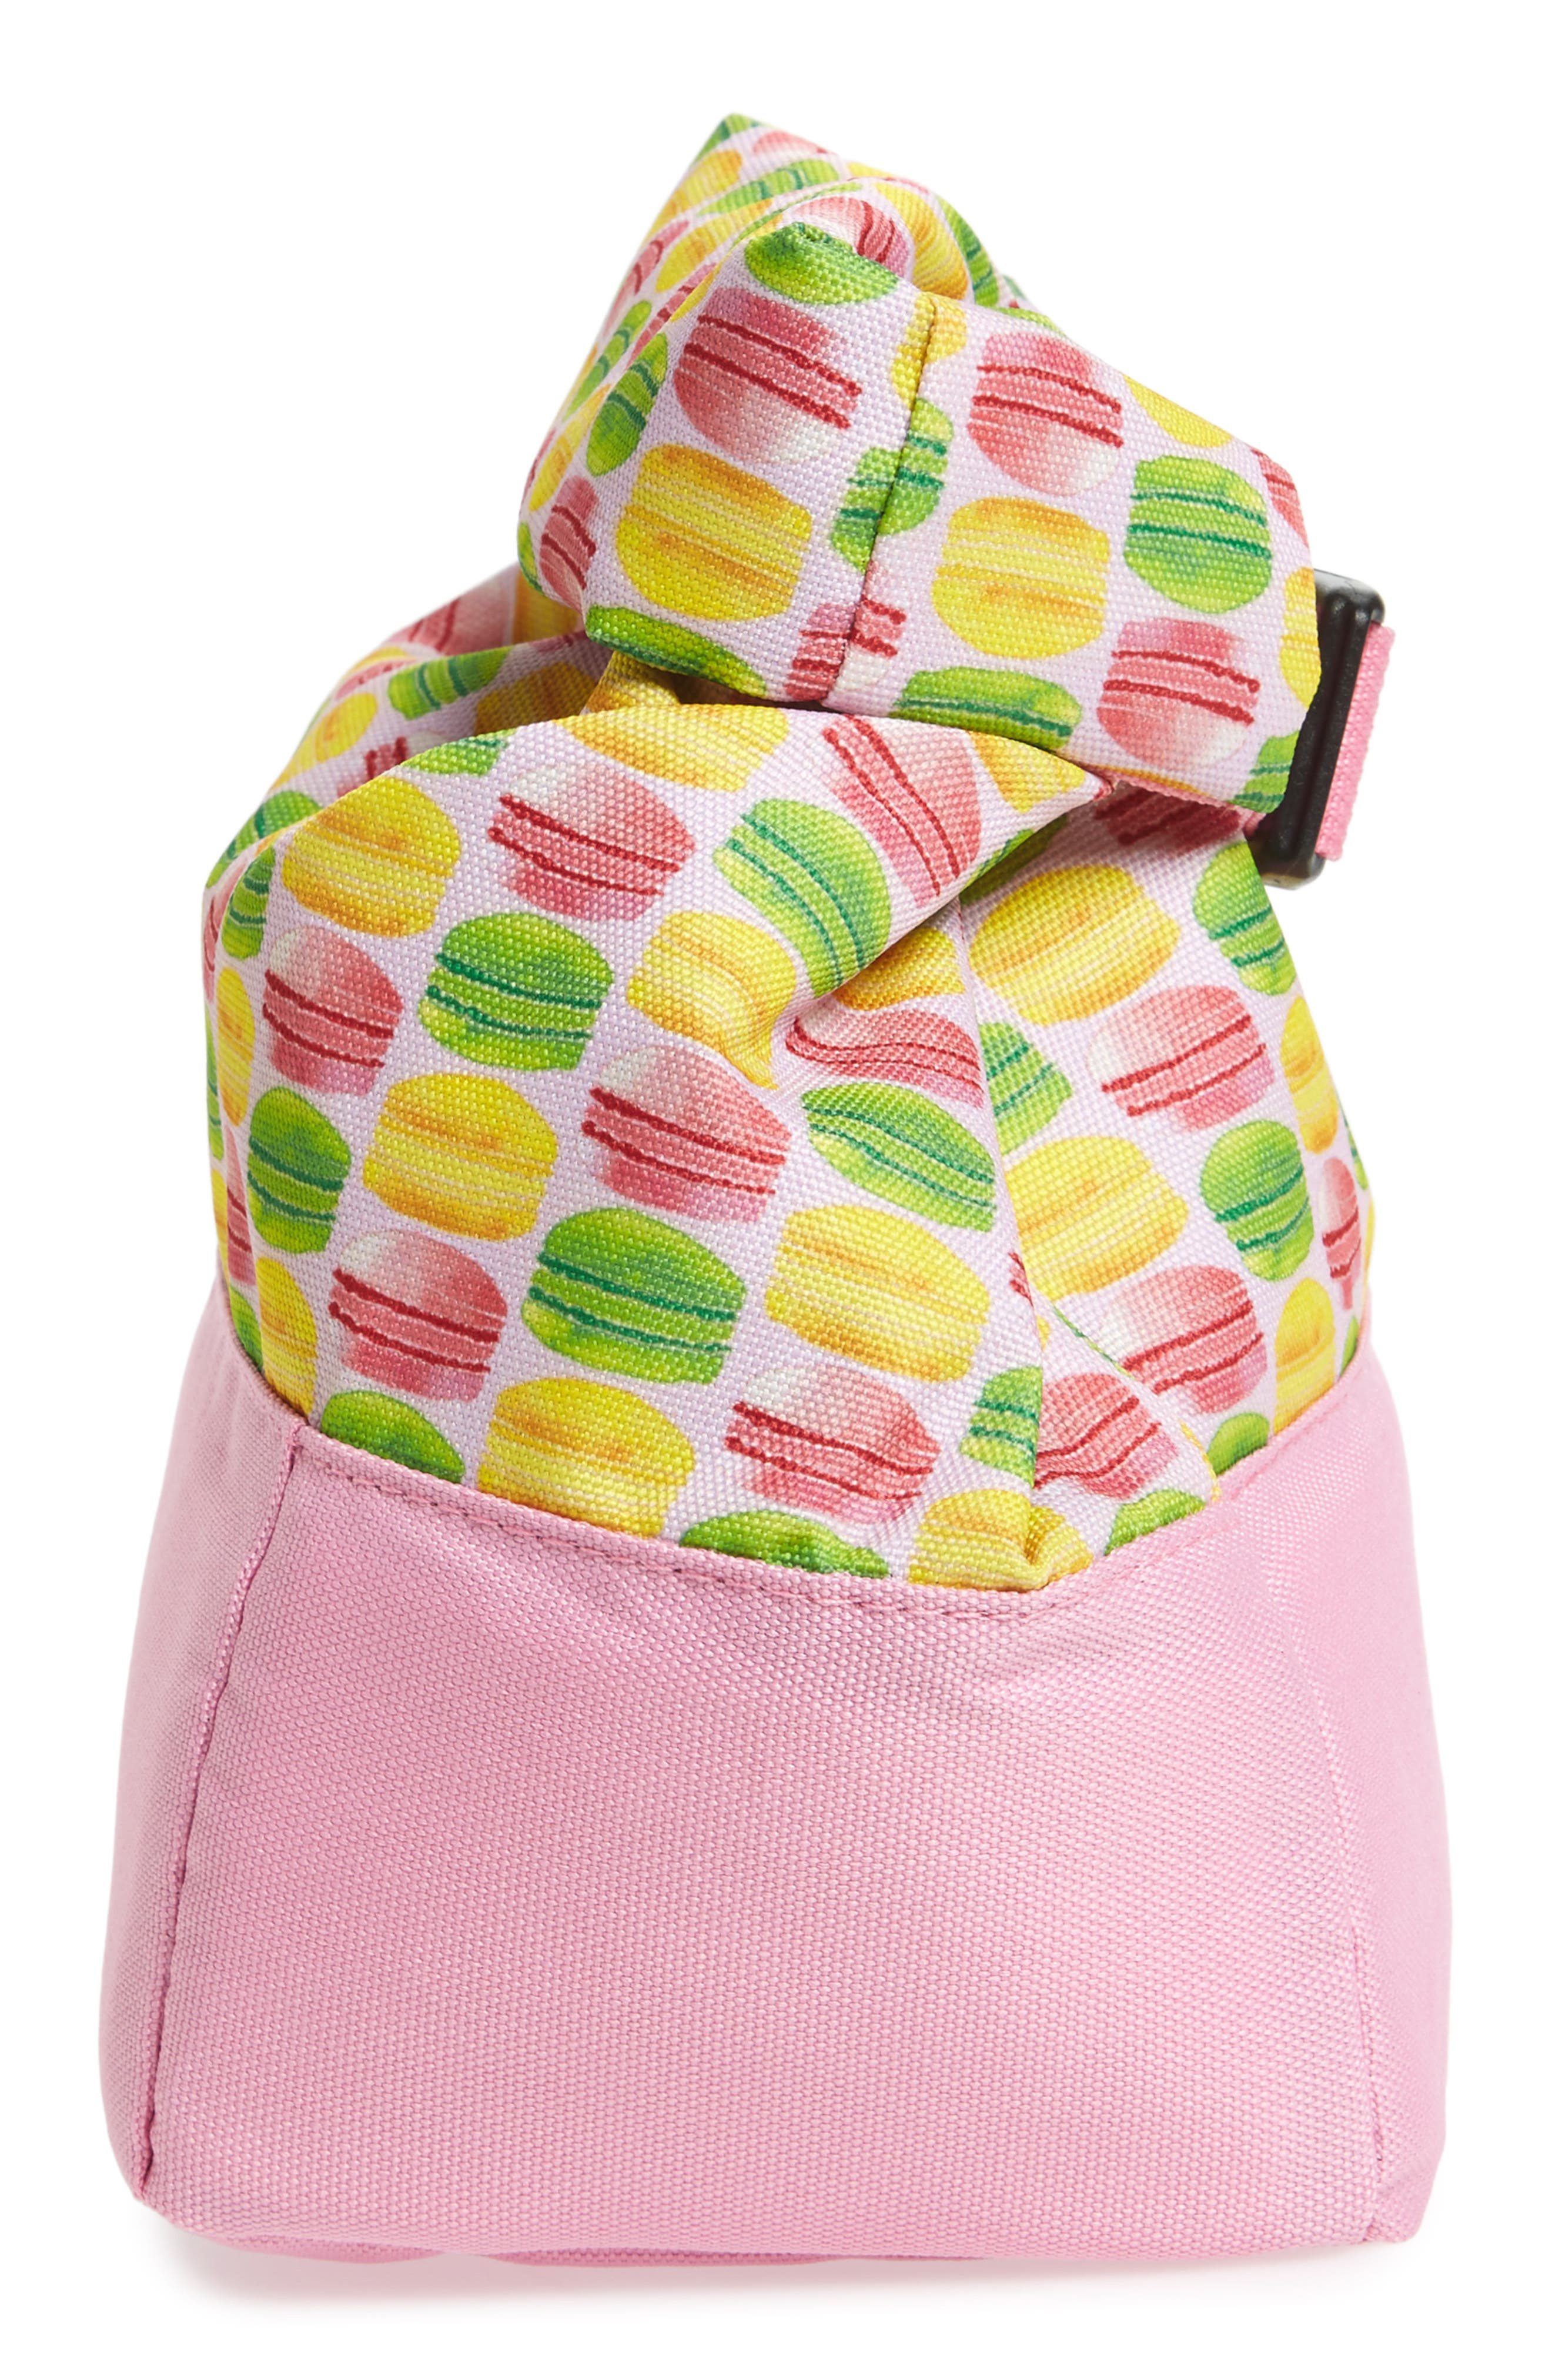 Macaron Print Roll Top Lunch Bag,                             Alternate thumbnail 3, color,                             Pink